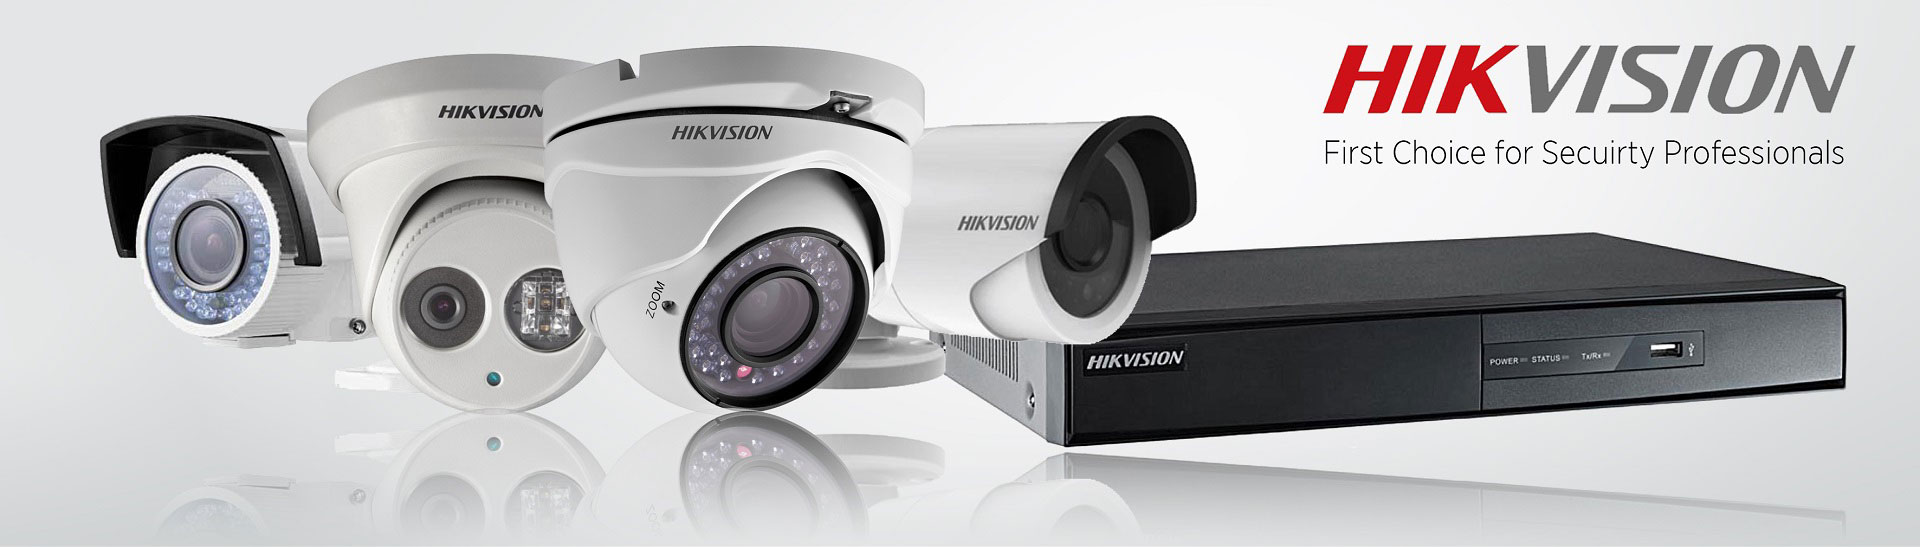 Hikvision Adelaide Home and Business Security Installations